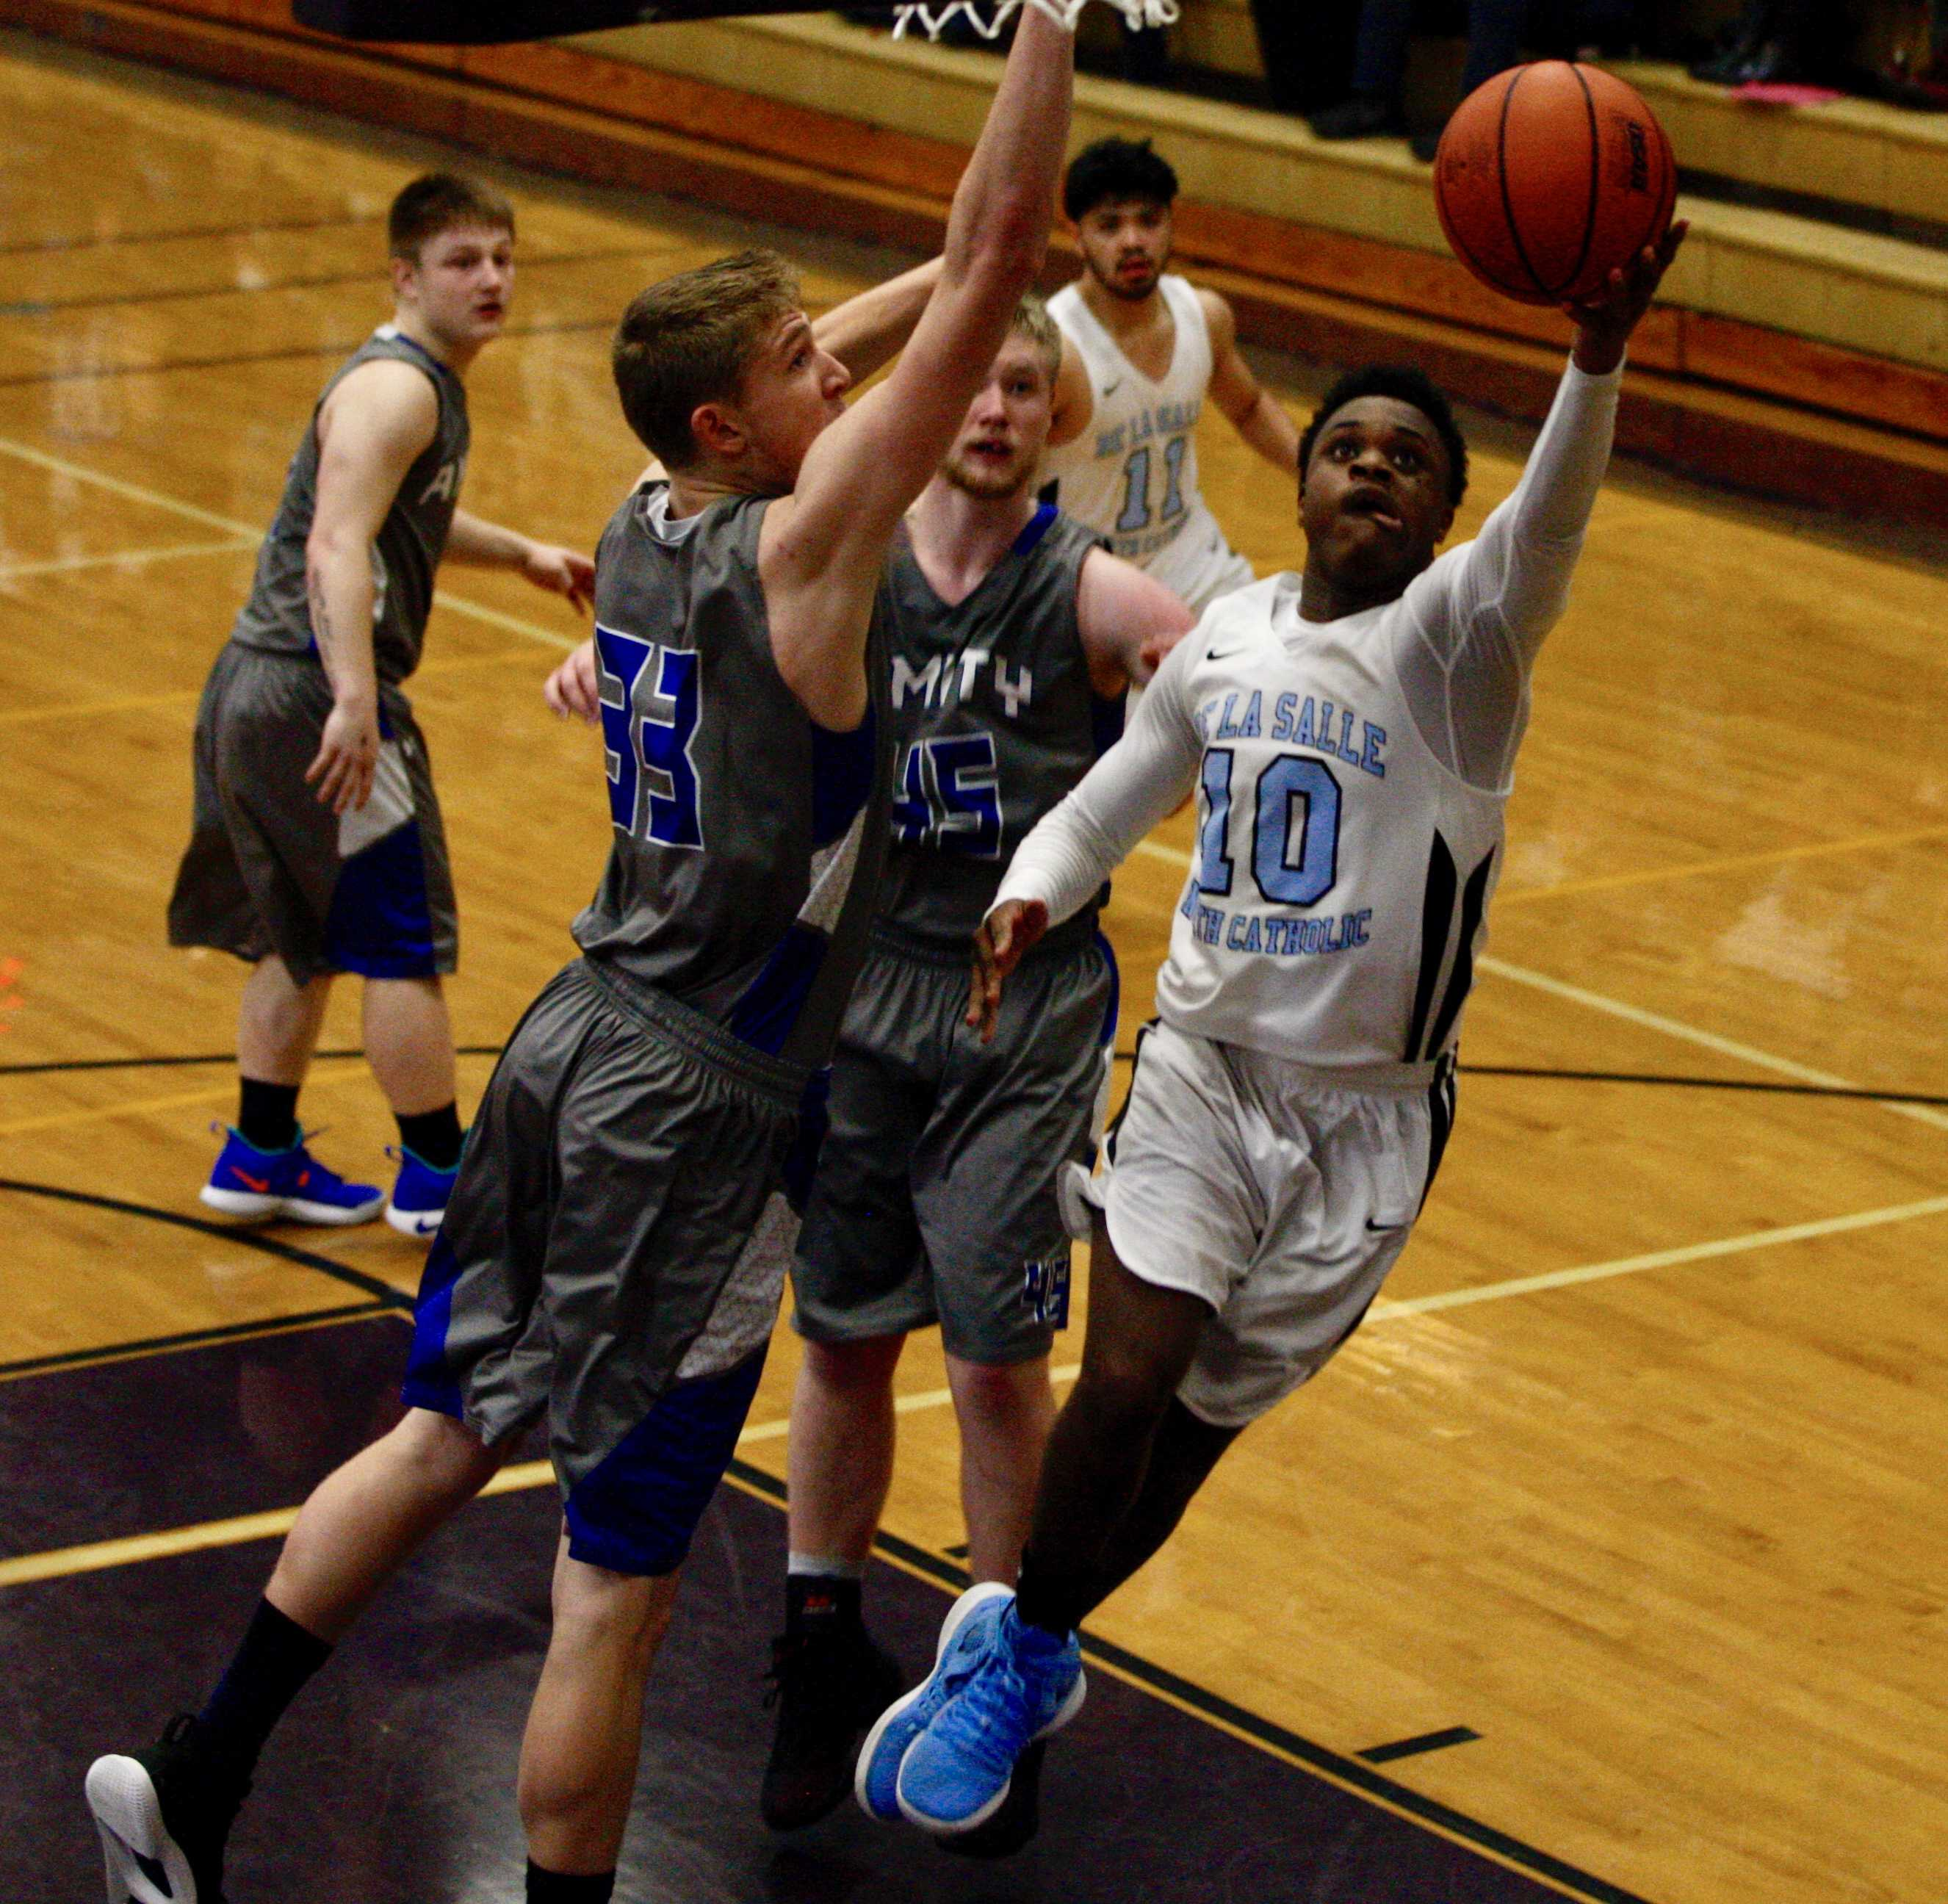 De La Salle North Catholic's Anthony Mosley slashes past two Amity defenders to score two of his 18 points (Norm Maves Jr.)